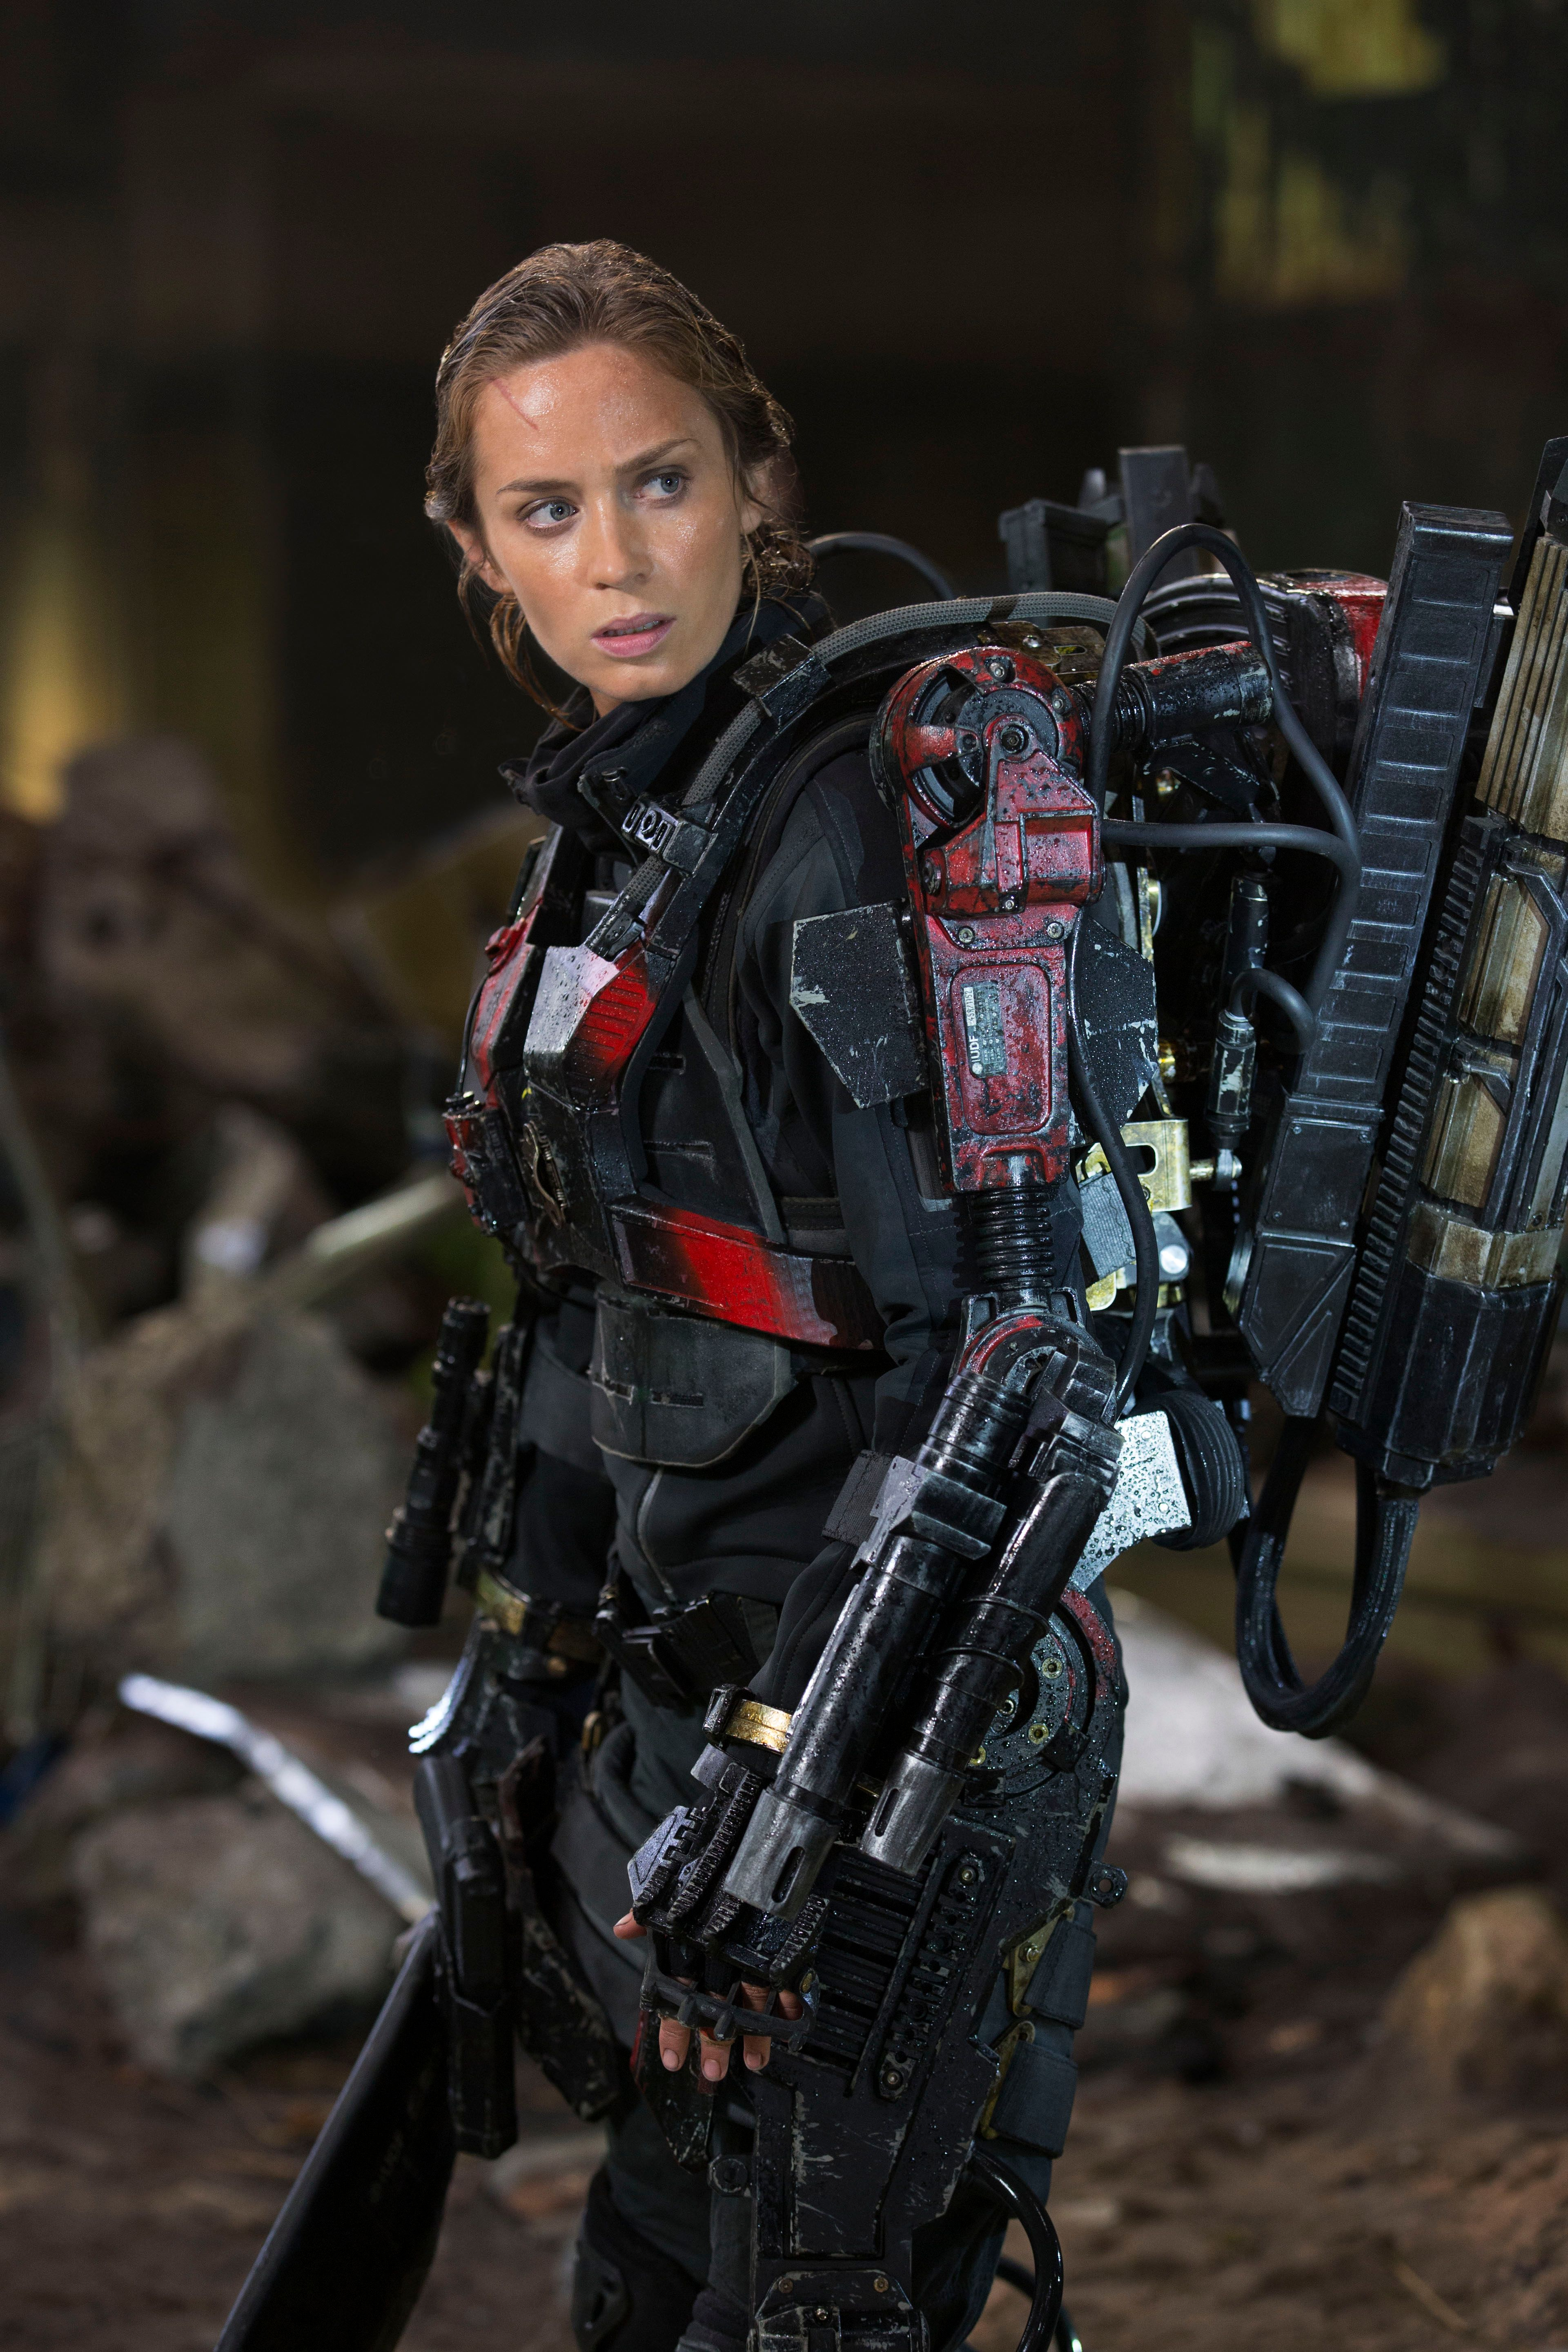 Tomorrow With A Smile Knock Off: Frank Darabont Exits The Huntsman; Emily Blunt To Play